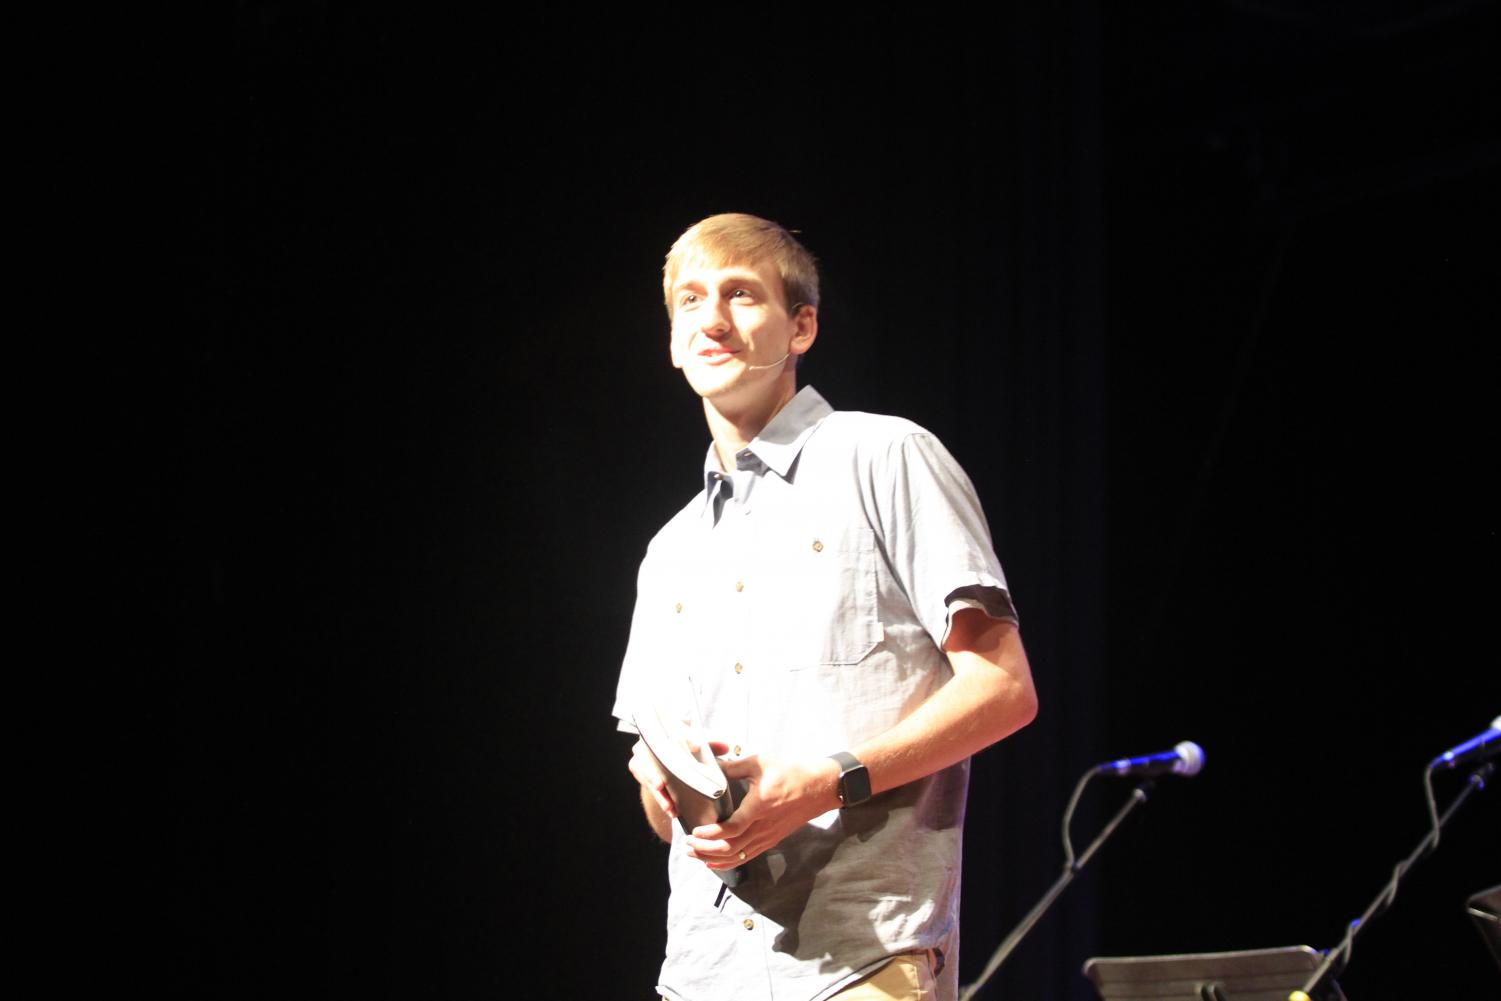 T.J. Classen from Lex City Church was the featured speaker in Chapel on September 18.